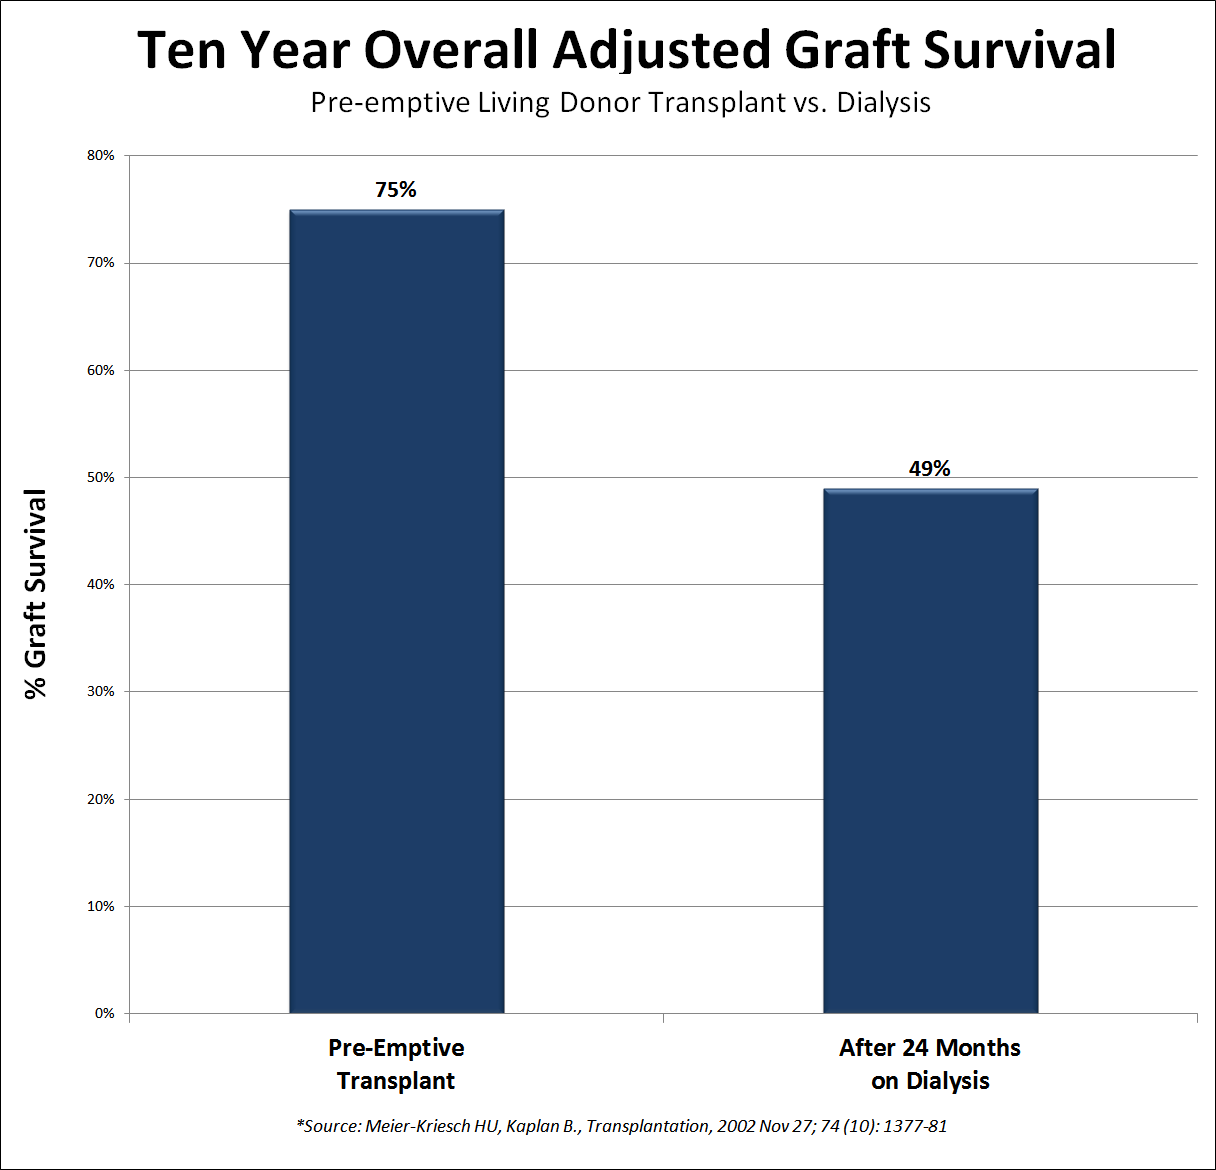 Ten year overall adjusted graft survival - Pre-emptive Living Donor Transplant vs. Dialysis